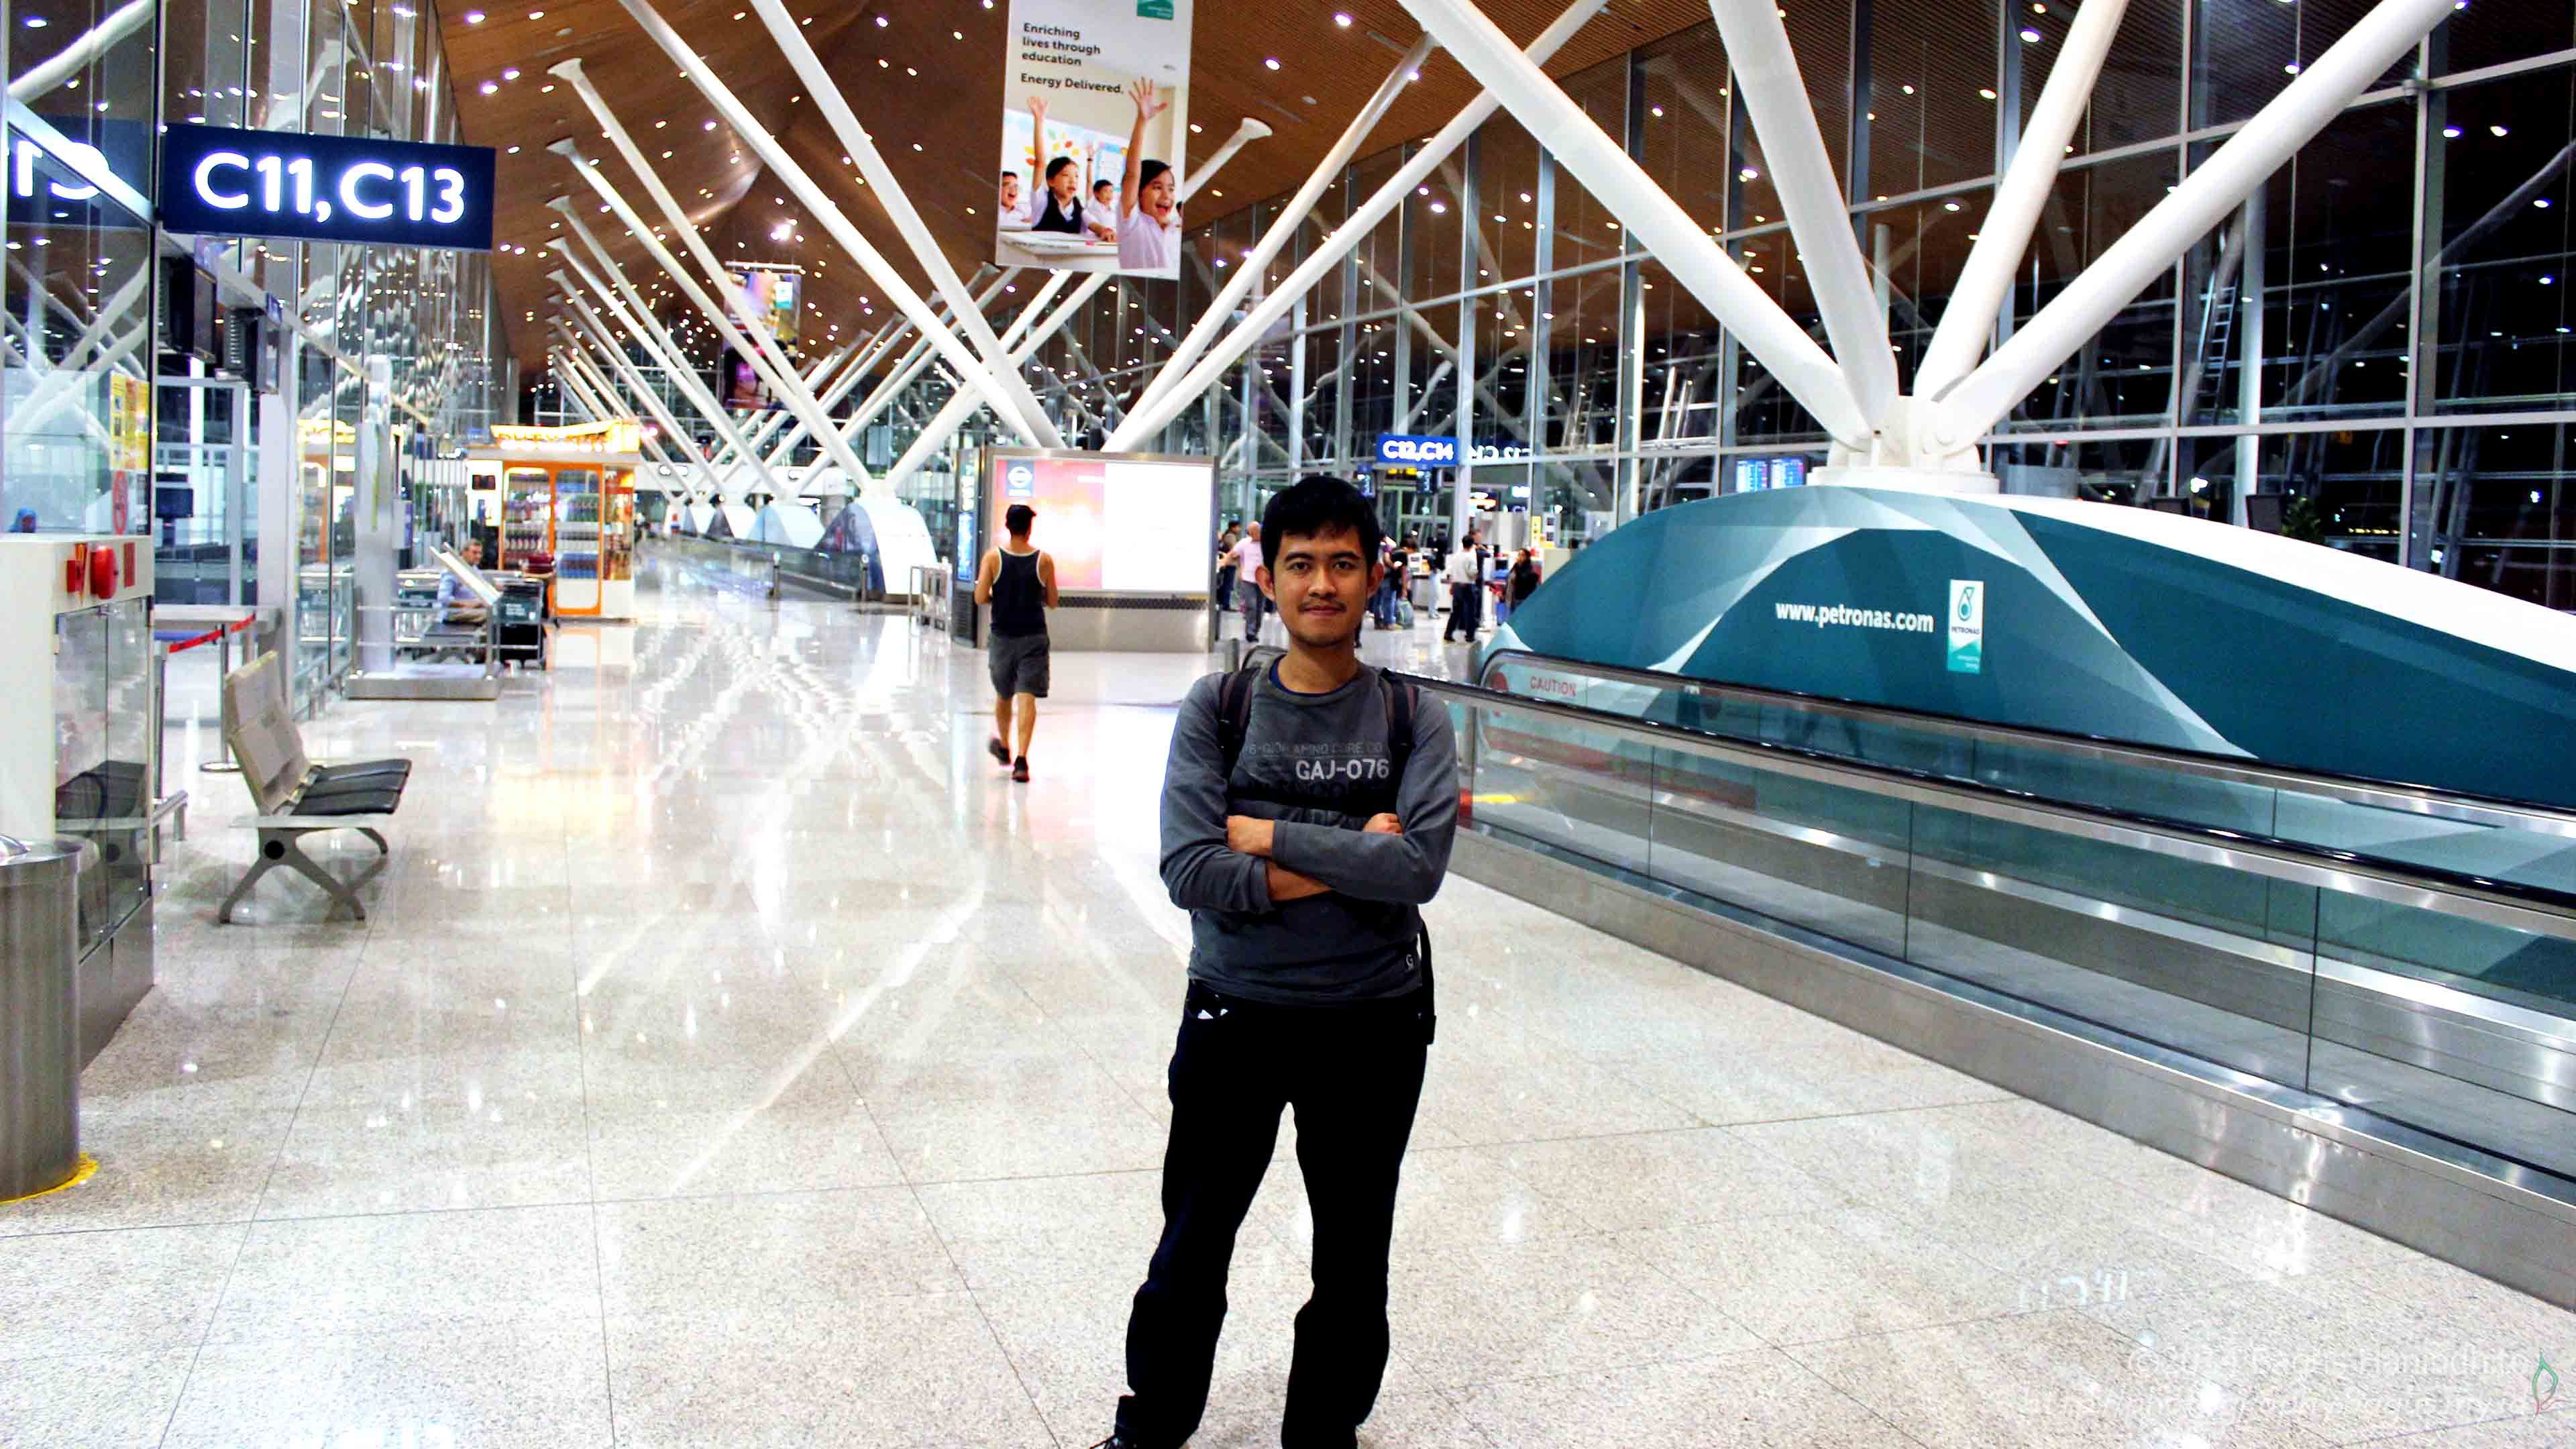 Stopover at Kuala Lumpur International Airport (KUL). I was able to stretch my body and got ready for the next part of flight.